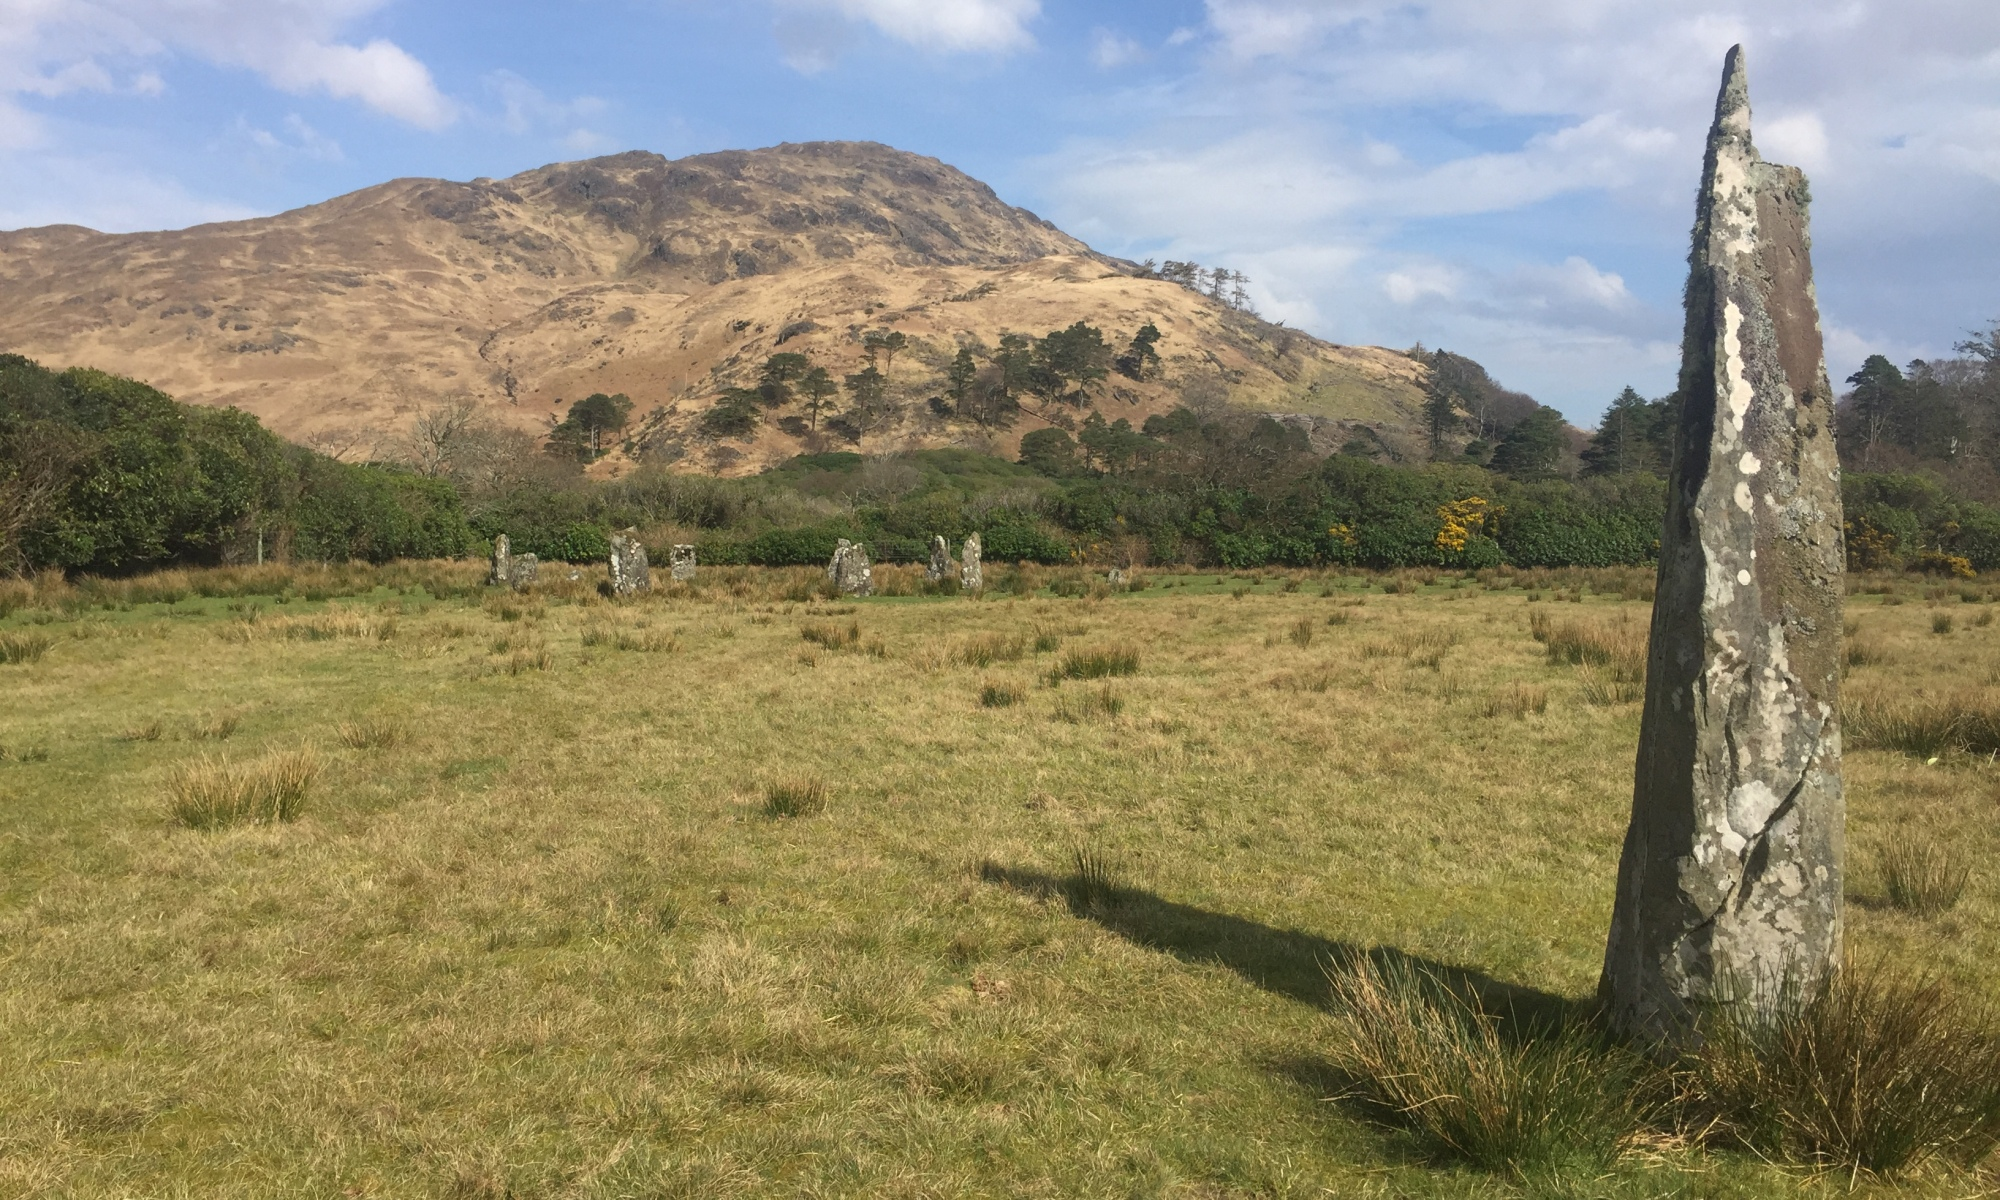 standing stones near loch buie, isle of mull. one stone stands in the foreground with a ring in the distance and a hill rising behind them on a bright sunny day.